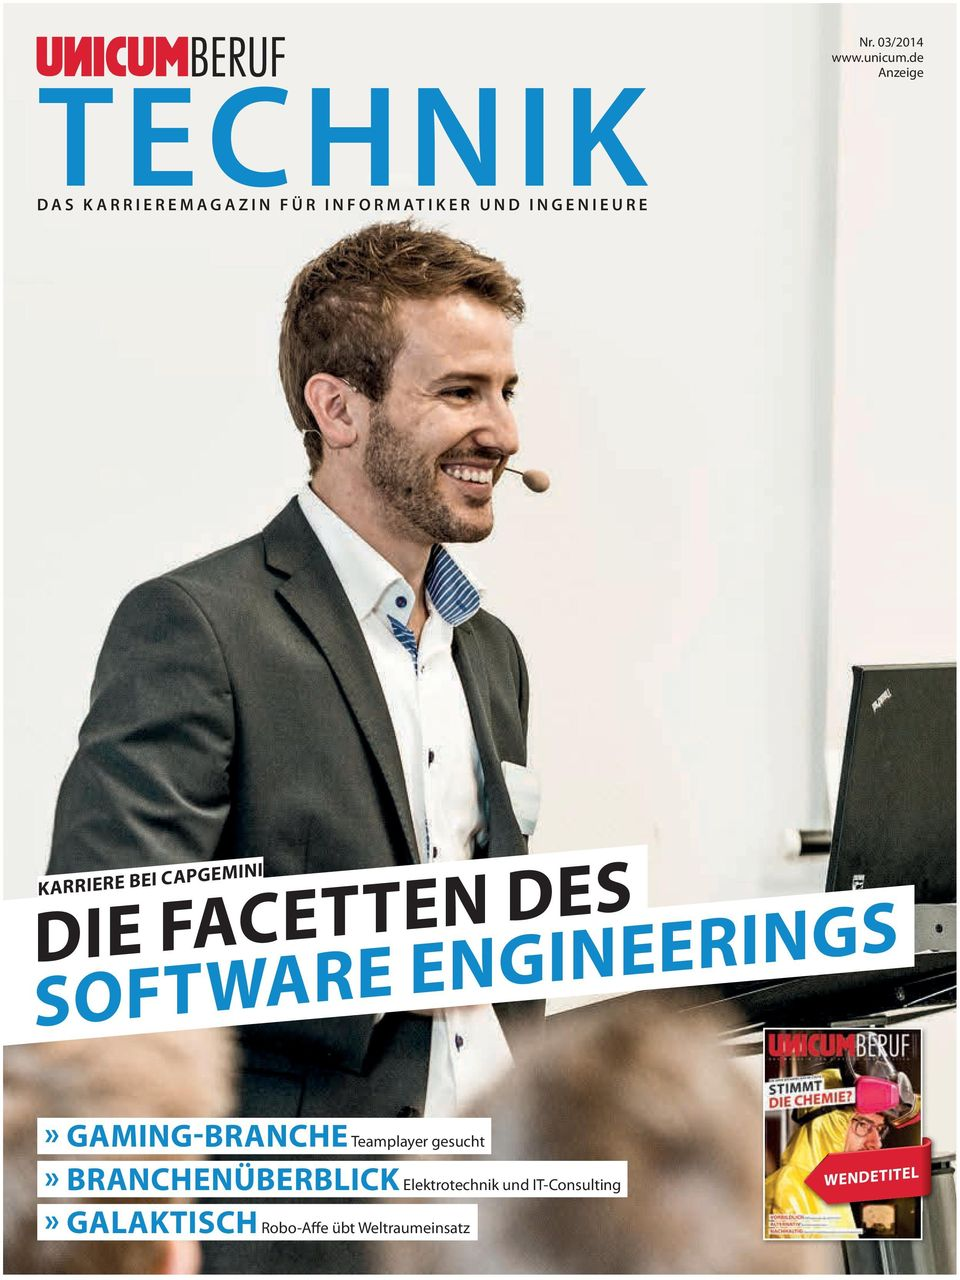 de Anzeige KARRIERE BEI CAPGEMINI DIE FACETTEN DES SOFTWARE ENGINEERINGS»